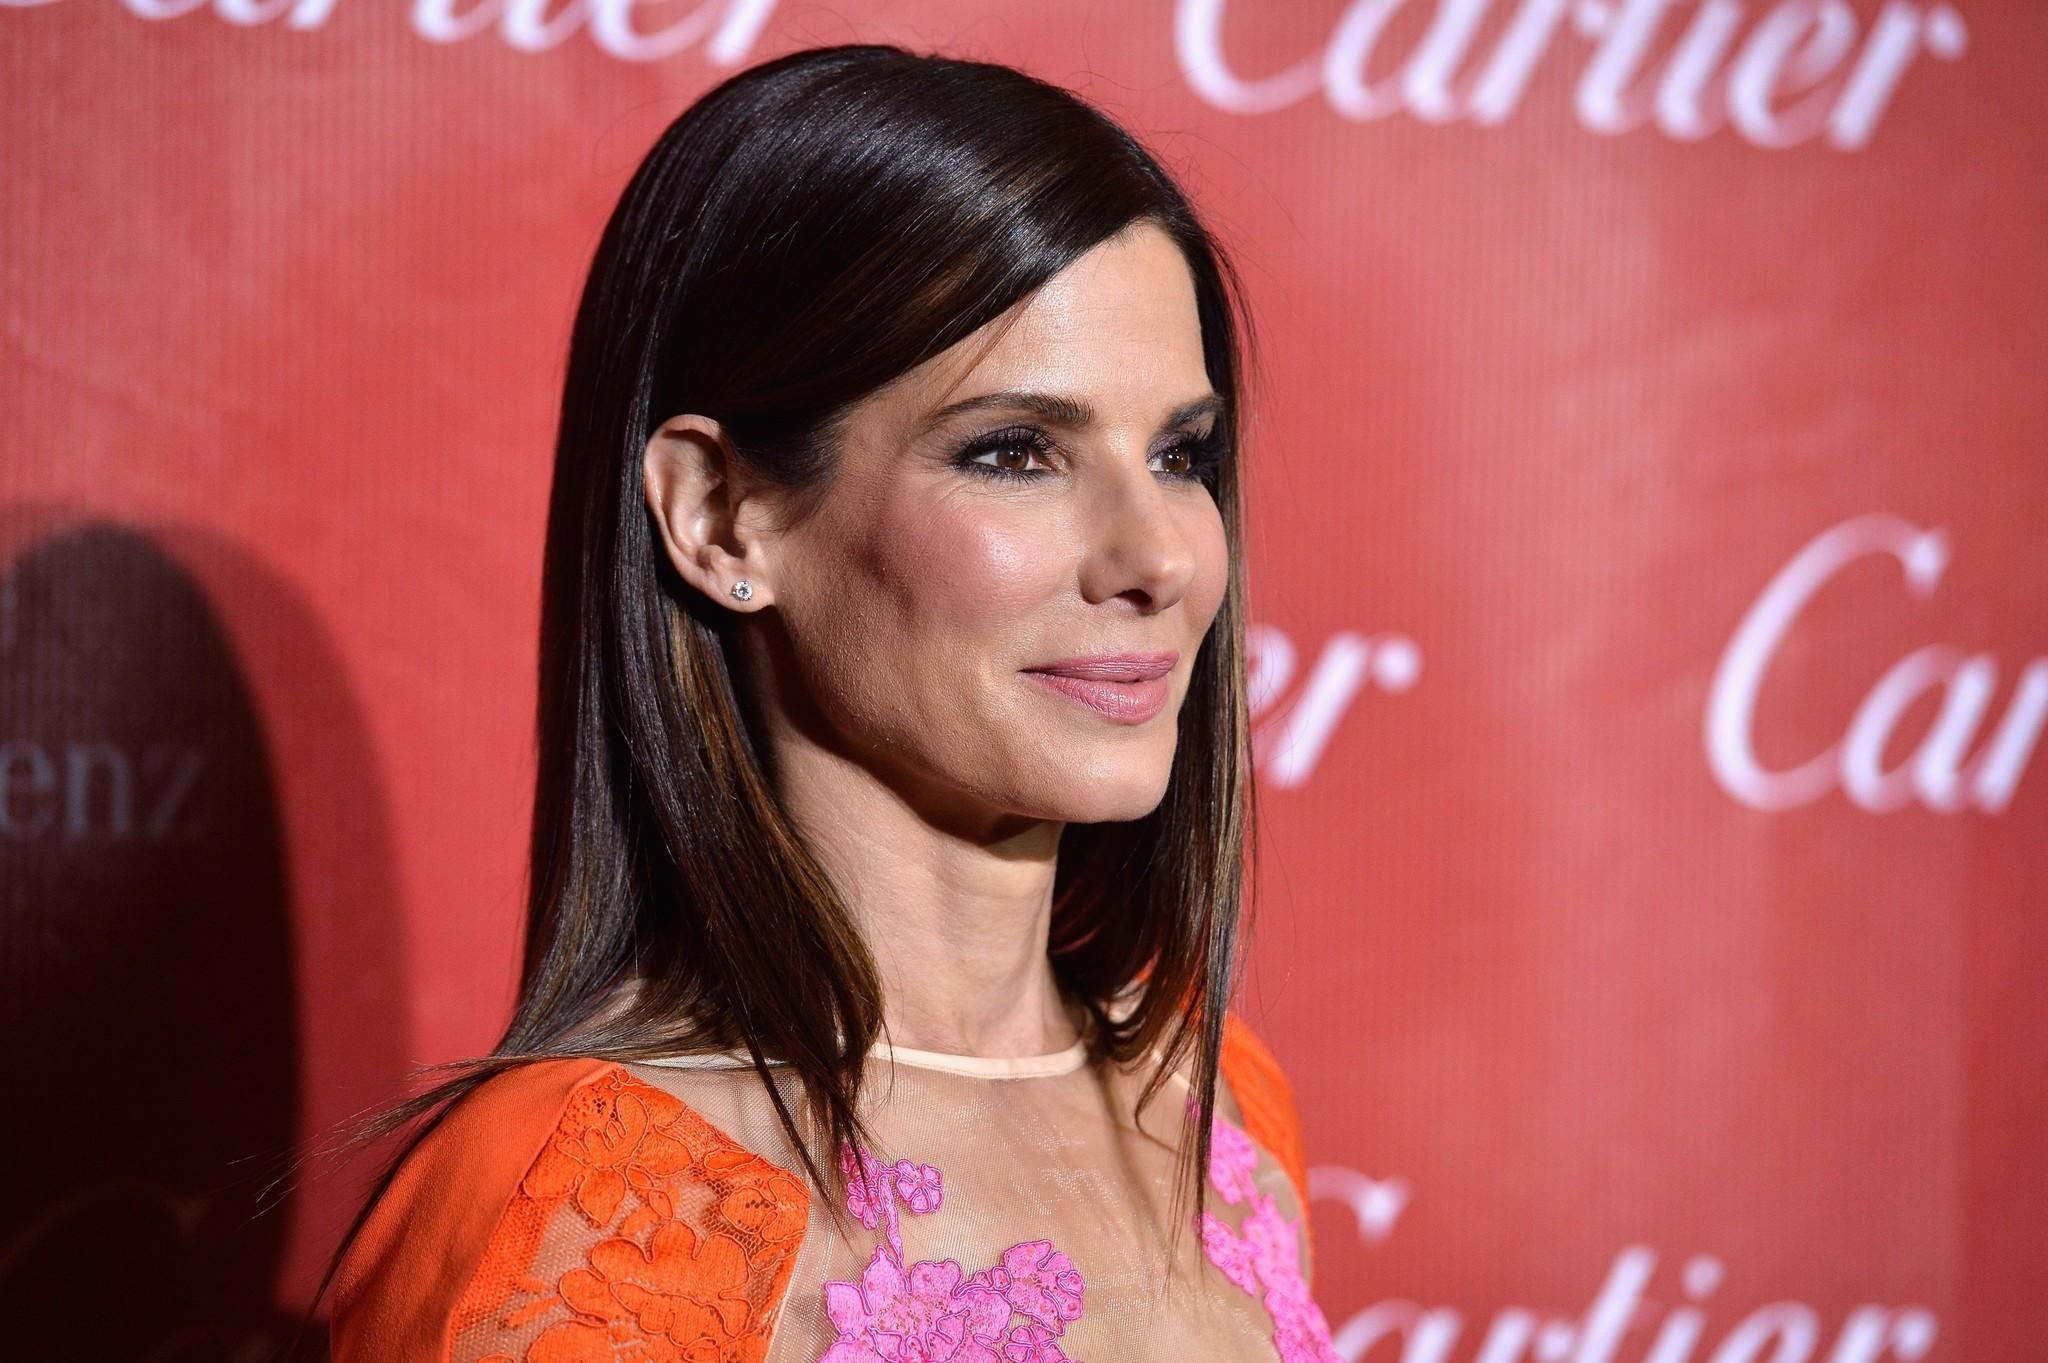 Actress Sandra Bullock arrives at the 25th Annual Palm Springs International Film Festival Awards Gala at Palm Springs Convention Center